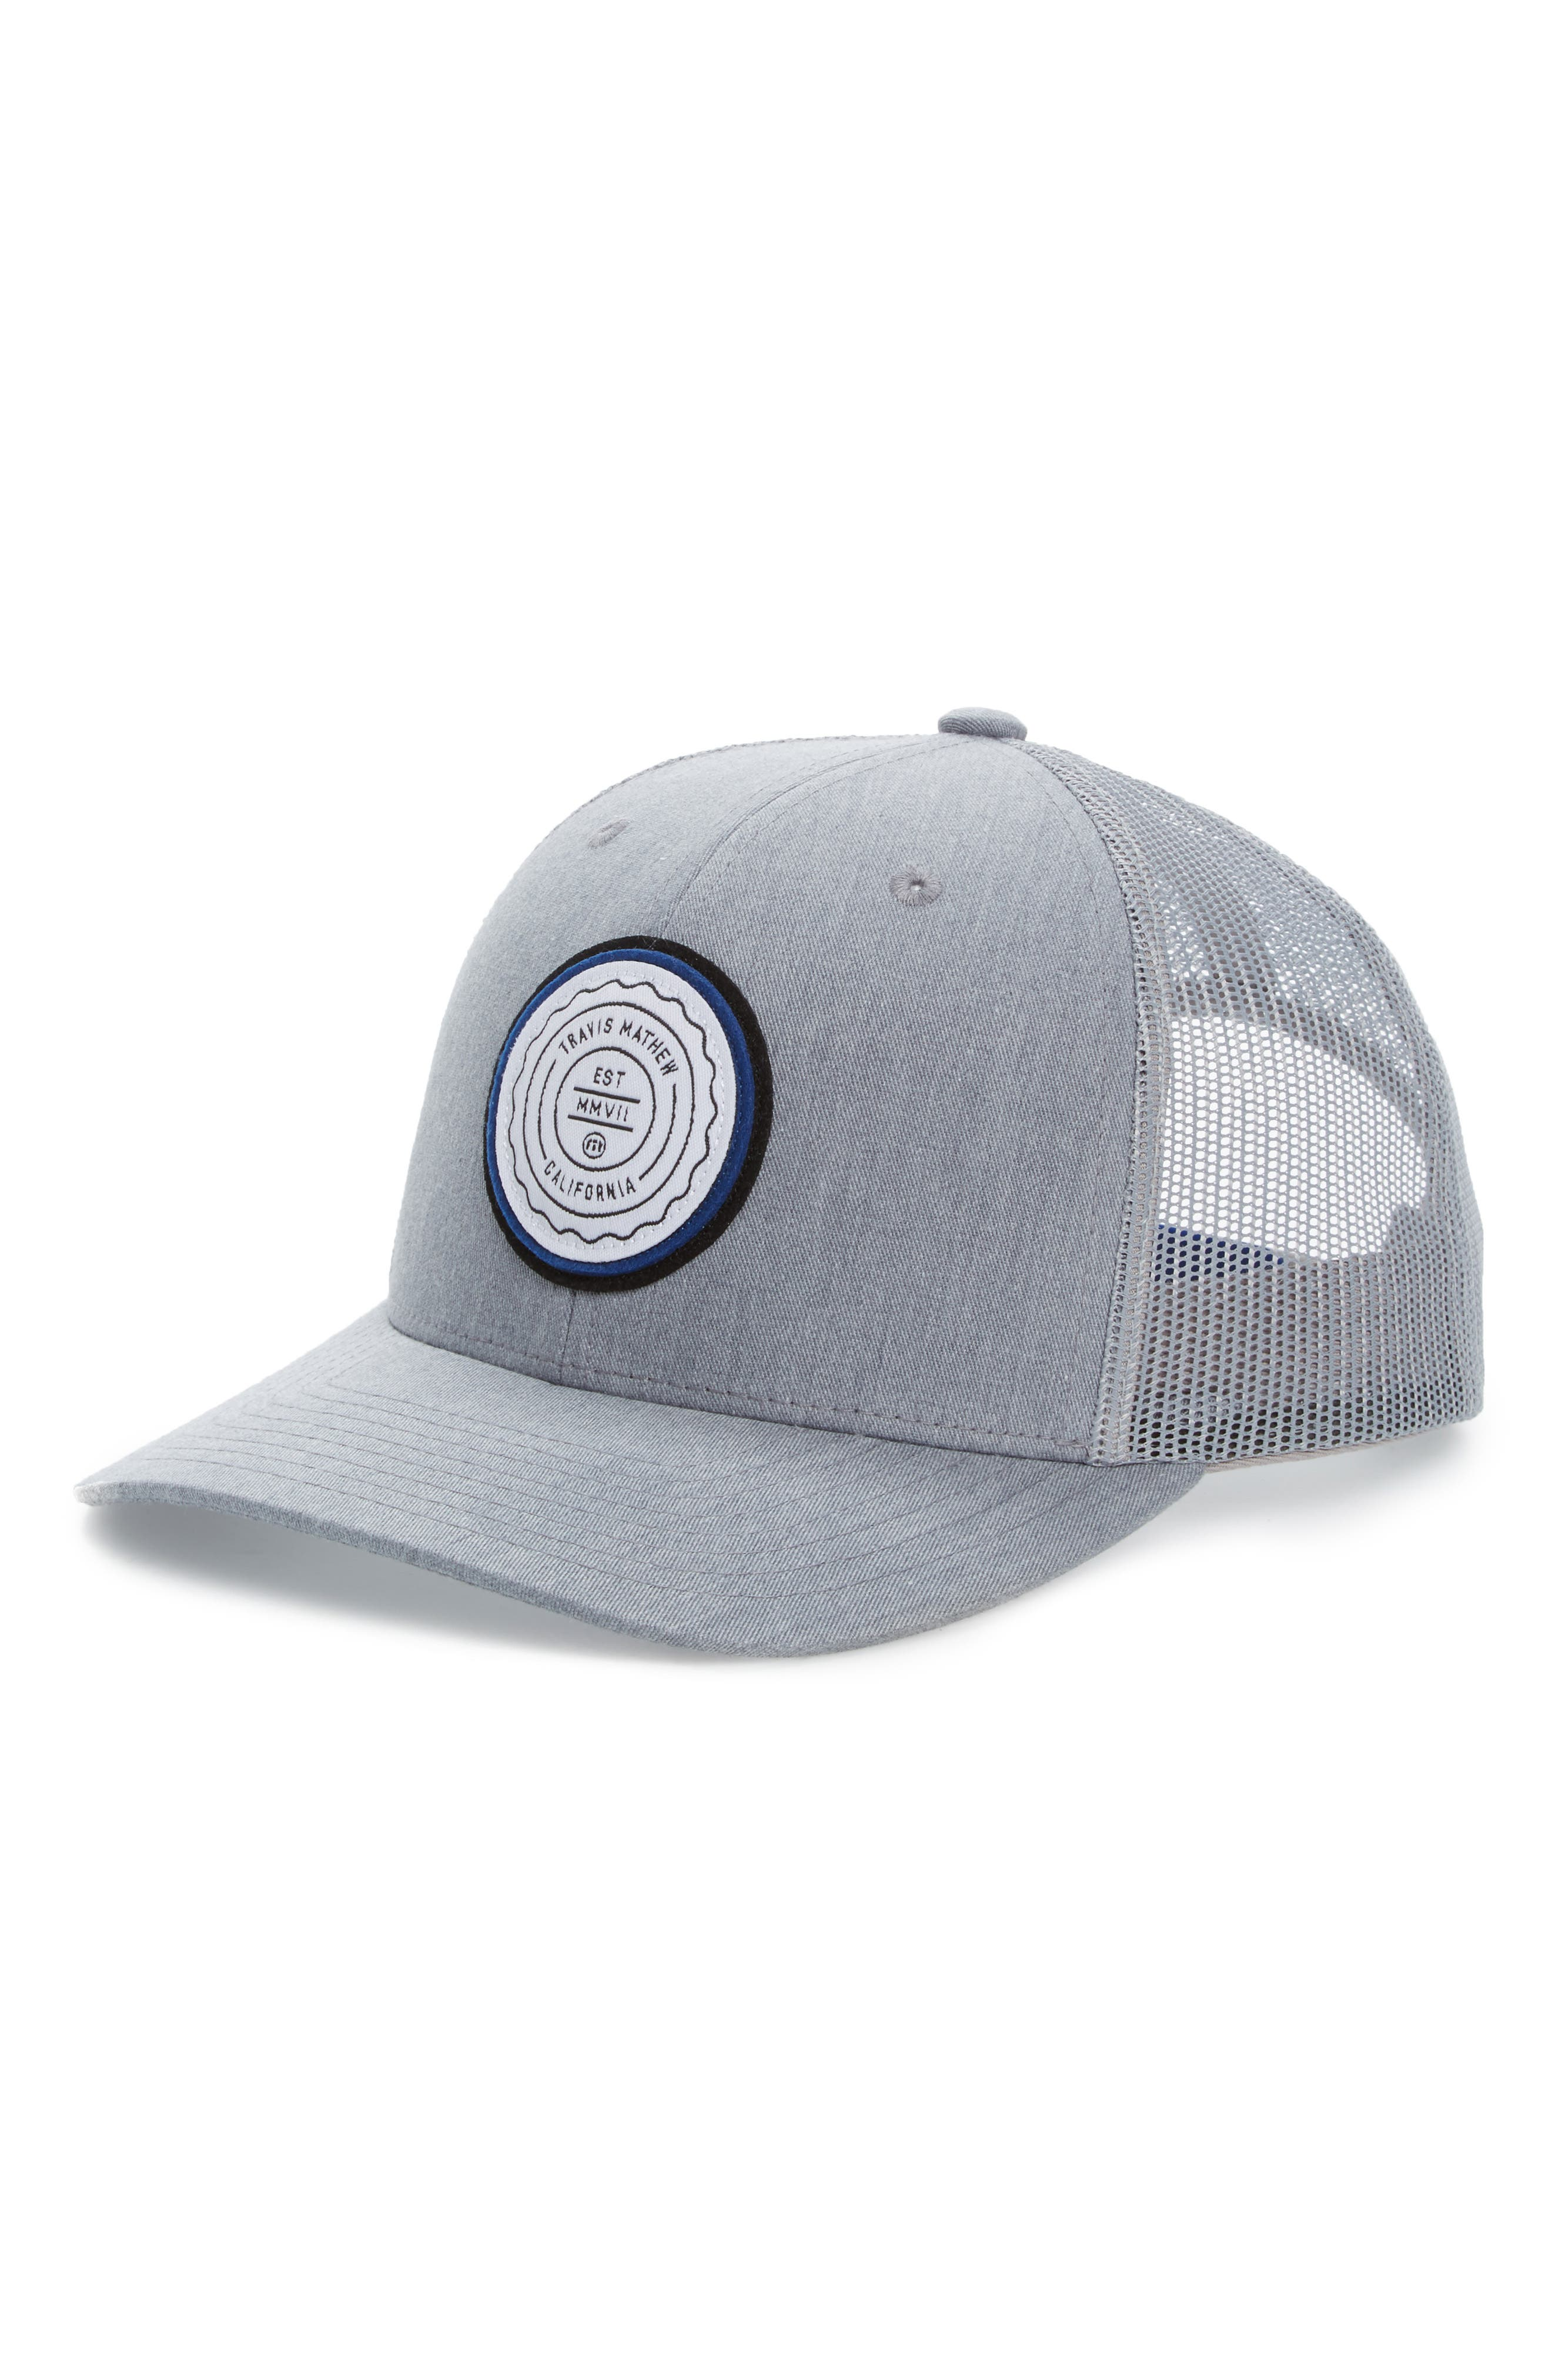 'Trip L' Trucker Hat,                         Main,                         color, HEATHER GREY